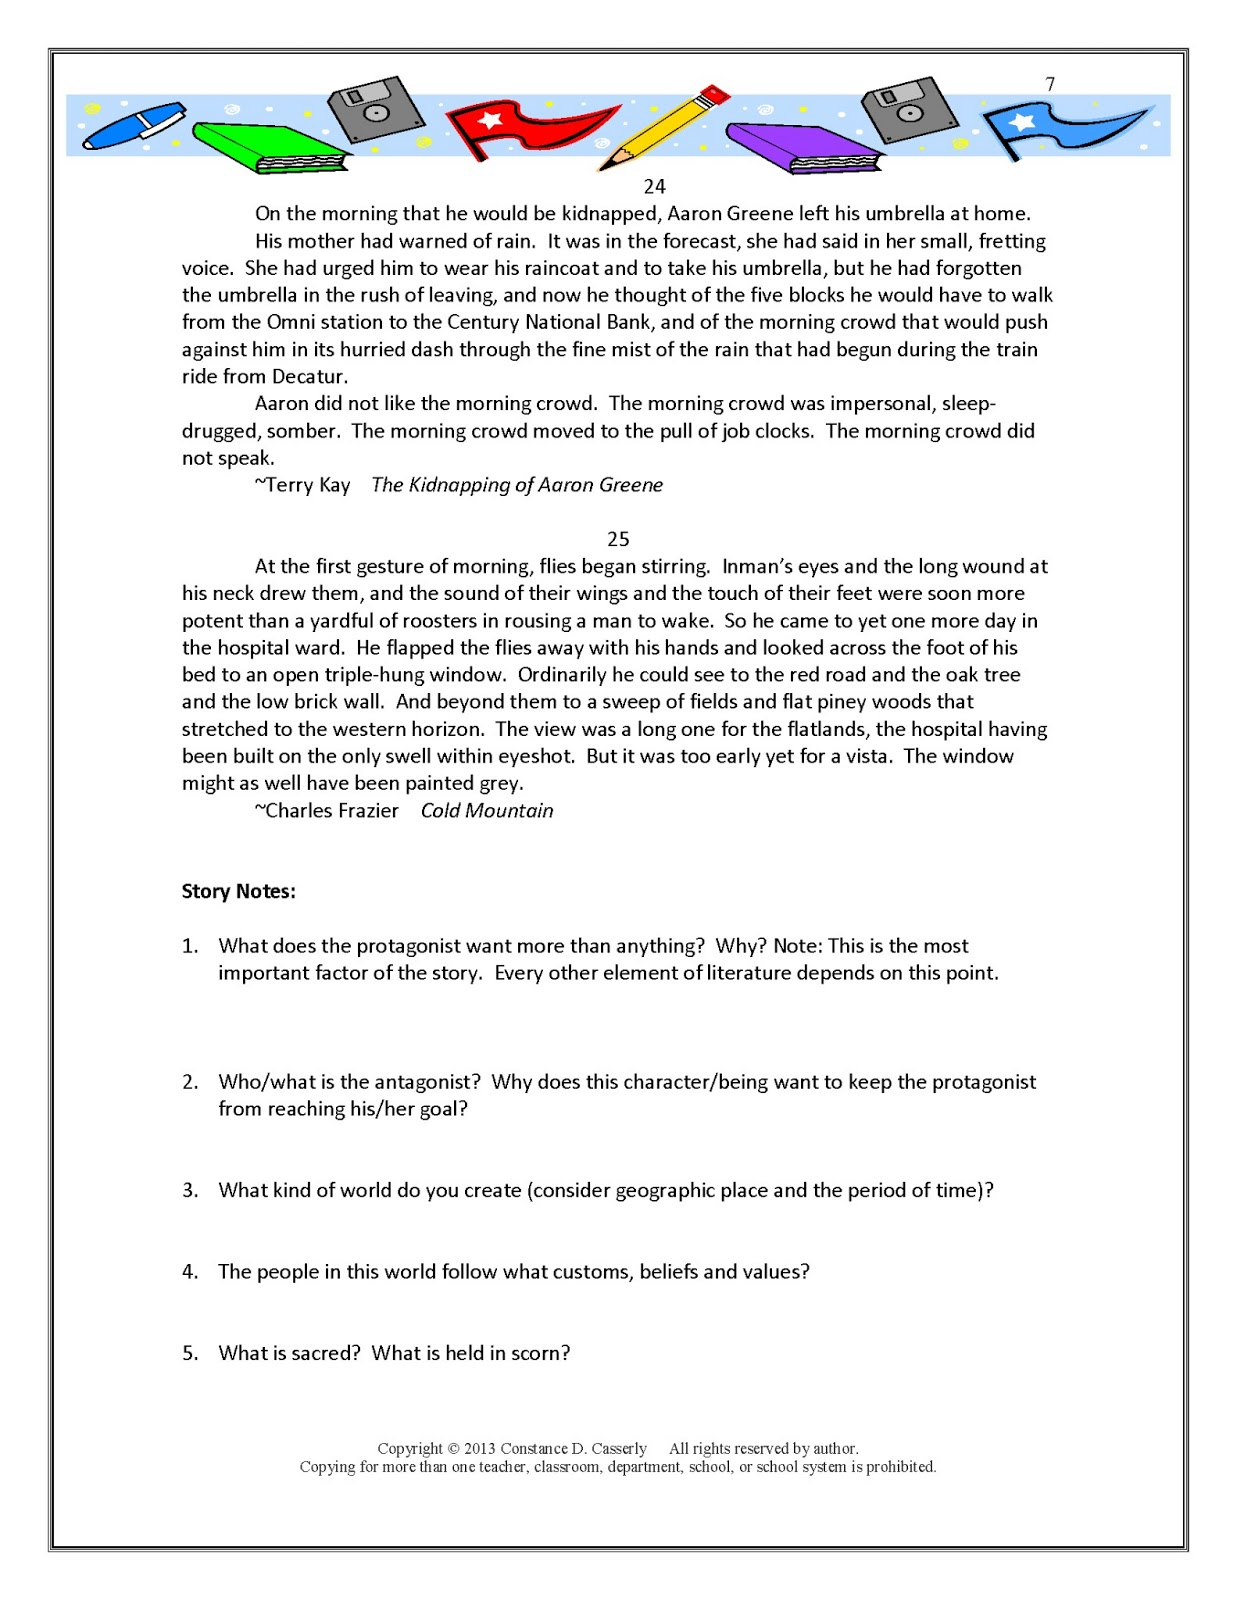 essay writing lesson plan high school All writers of essays need to know how to write a thesis statement high school lesson plan: students get thesis statements approved before writing an essay.